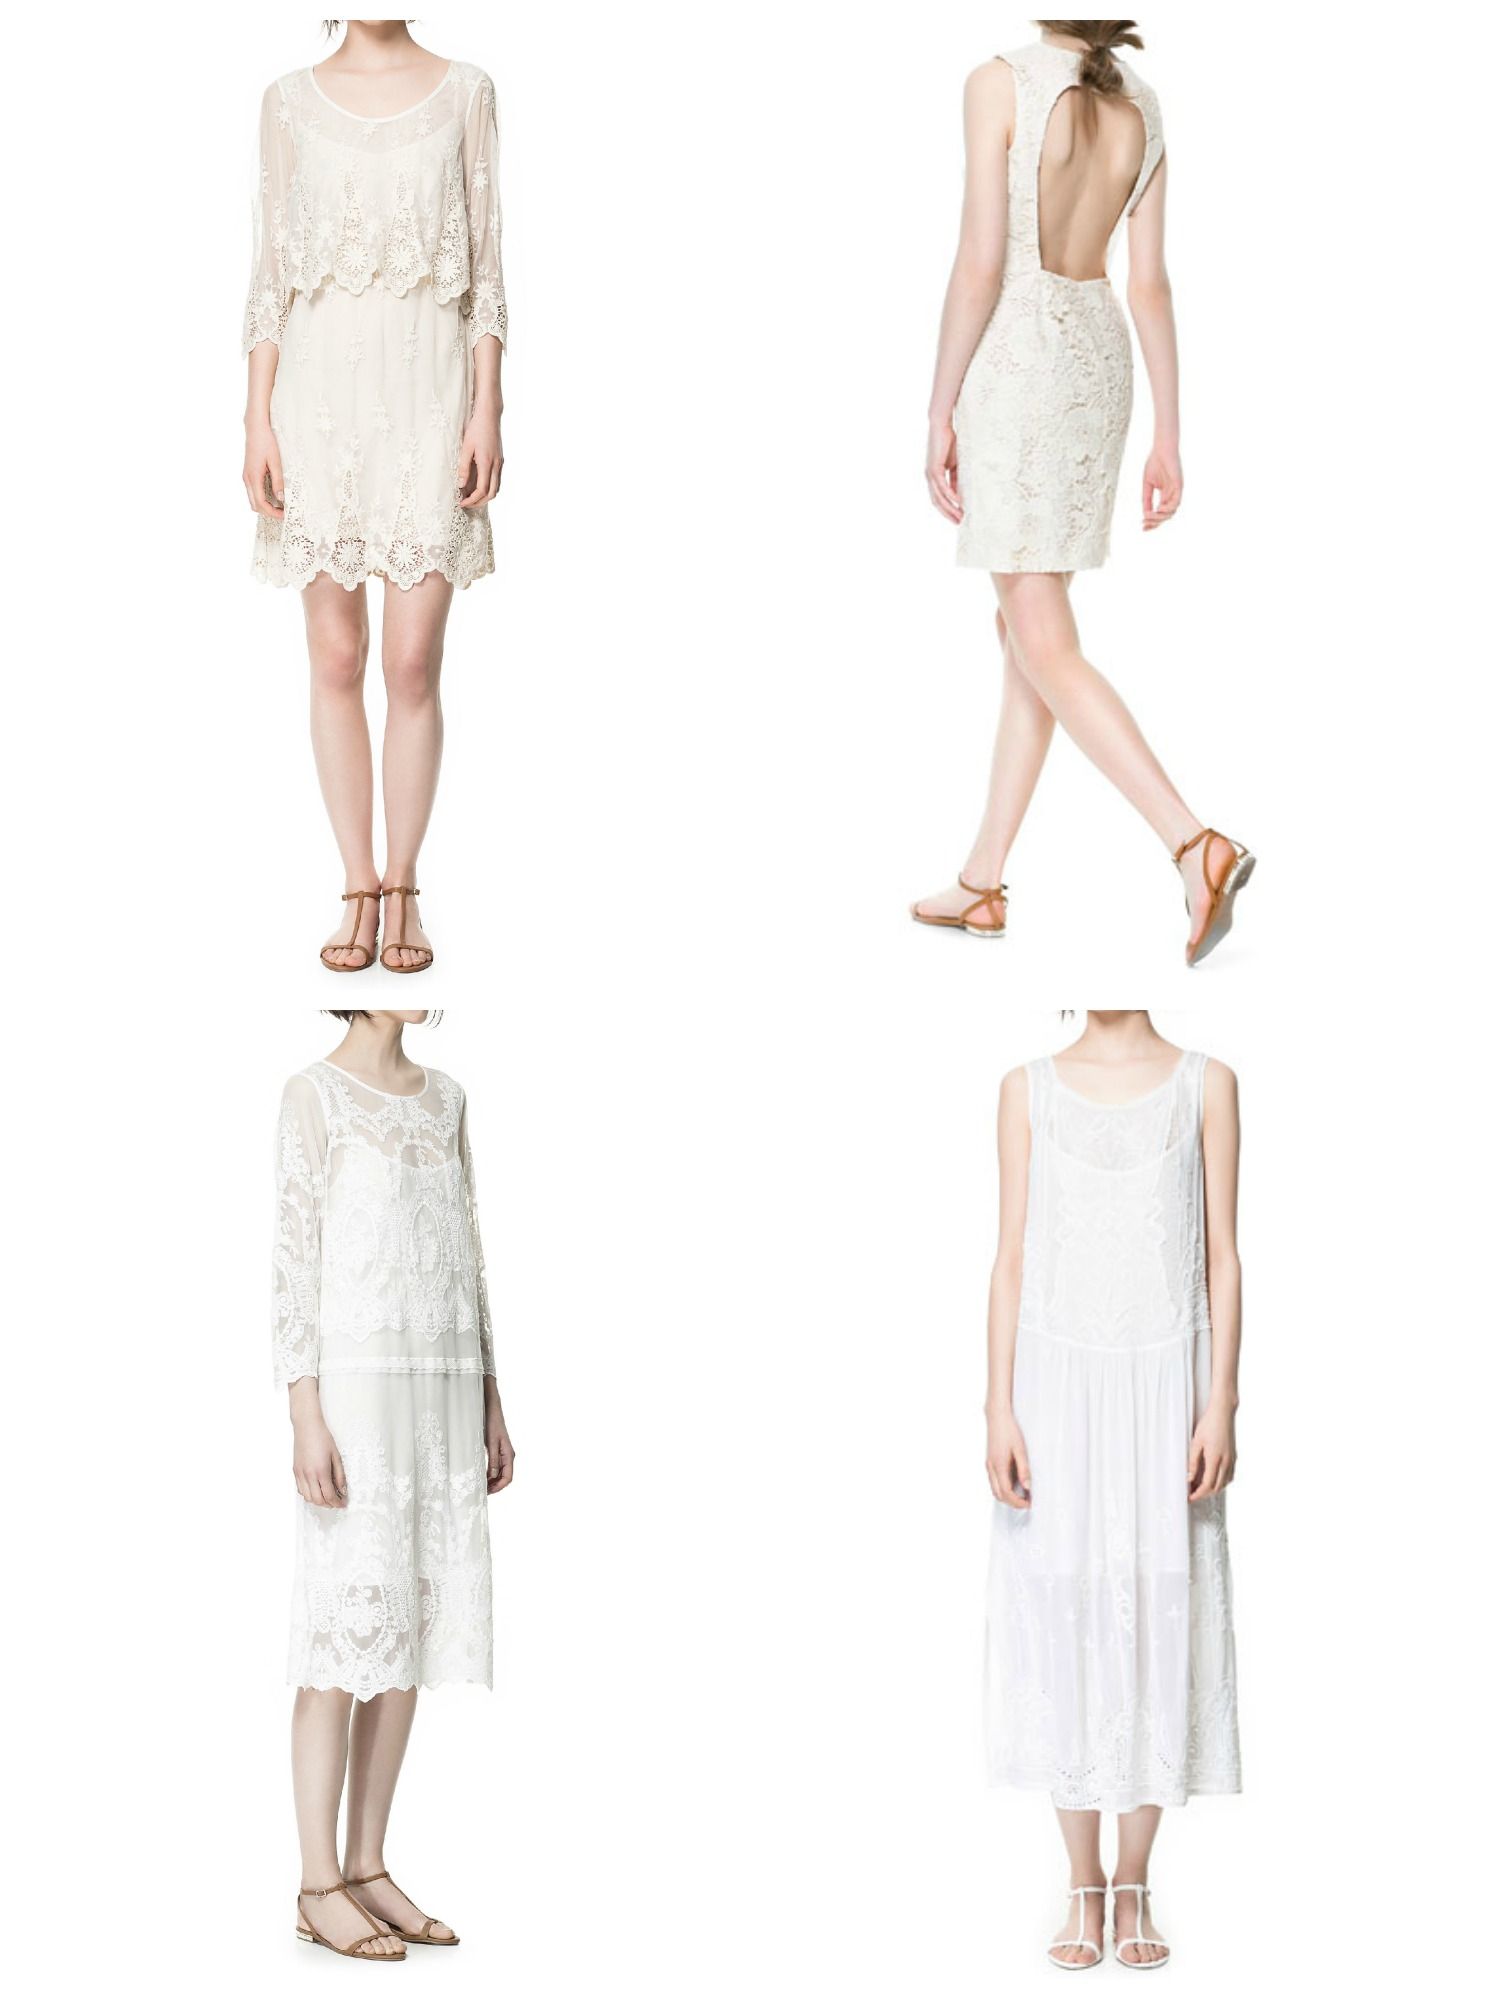 Zara Bridal Short Wedding Dresses 28